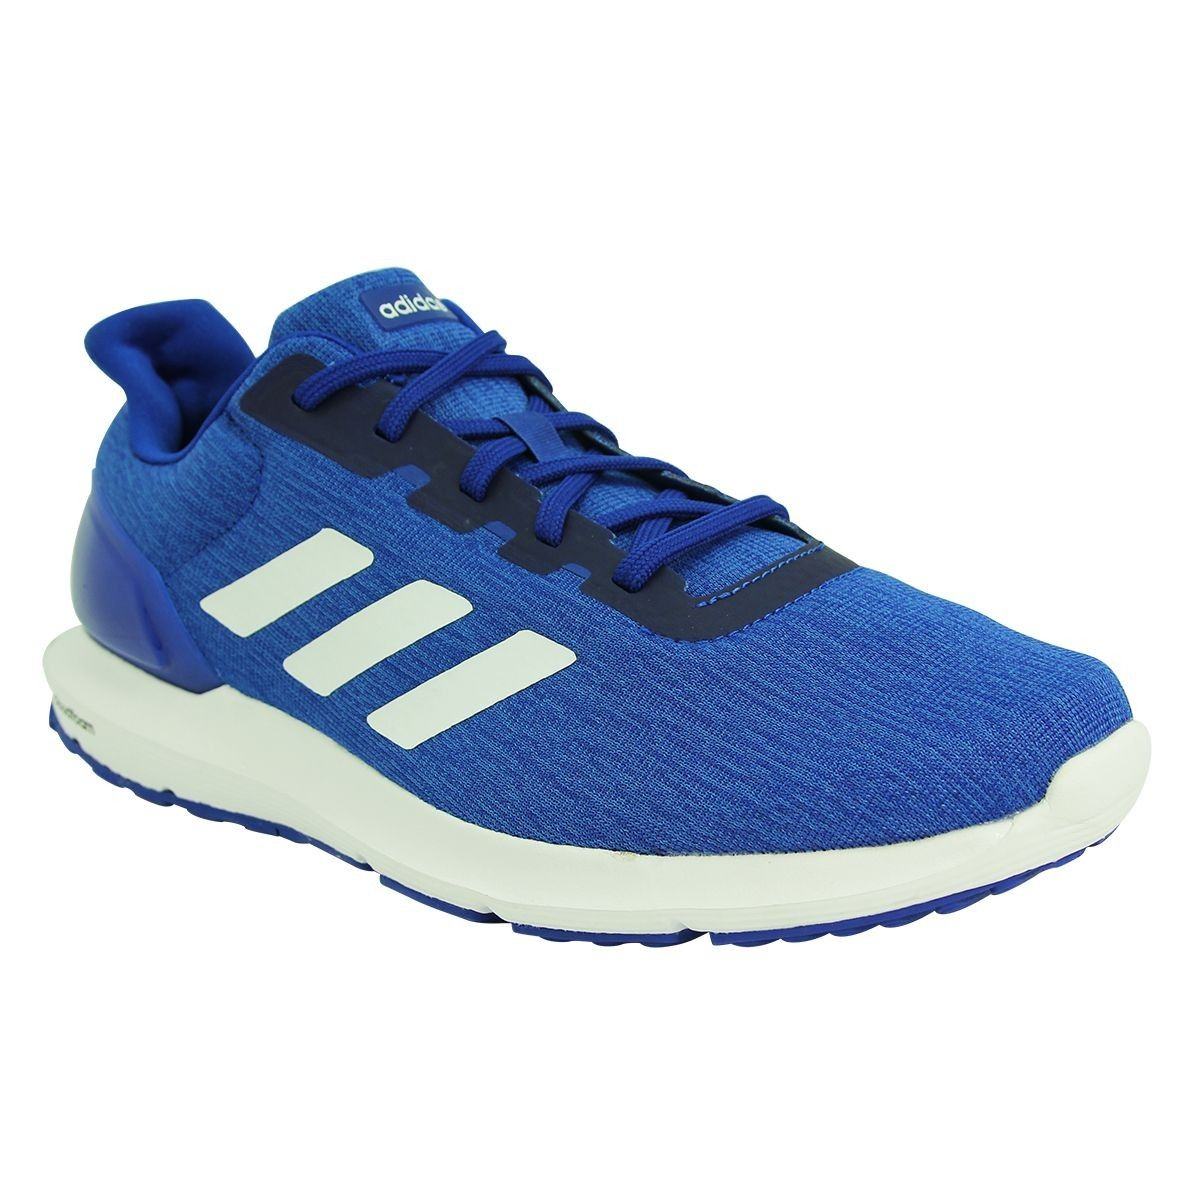 2 Sneakers M Performance Chaussures Cosmic Adidas Homme Mode 34RAL5j